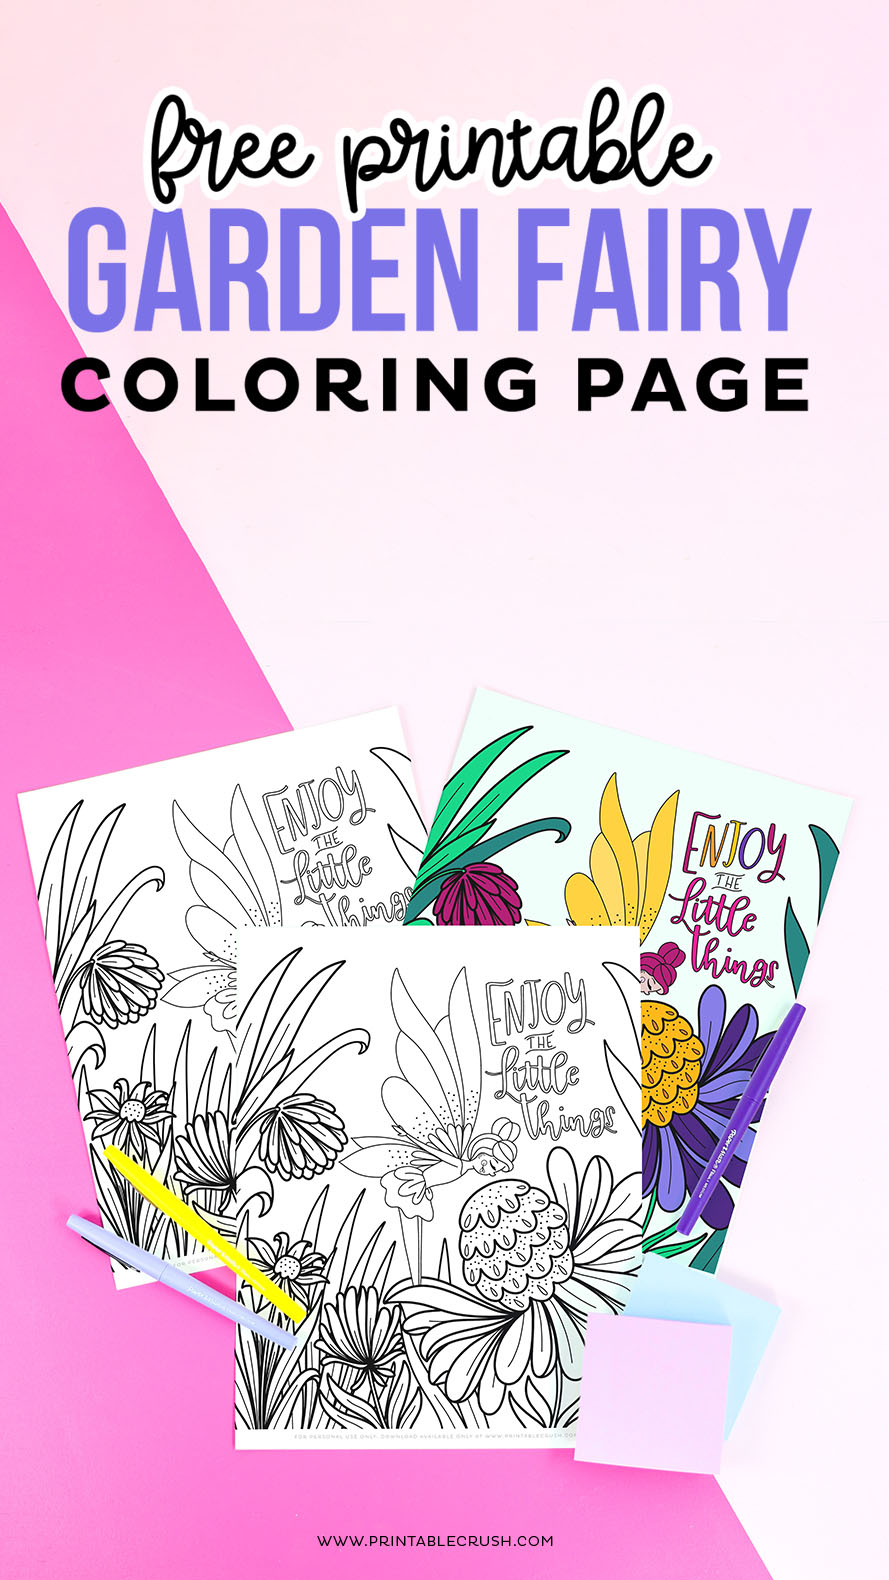 Free Printable Garden Fairy Coloring Page - download now